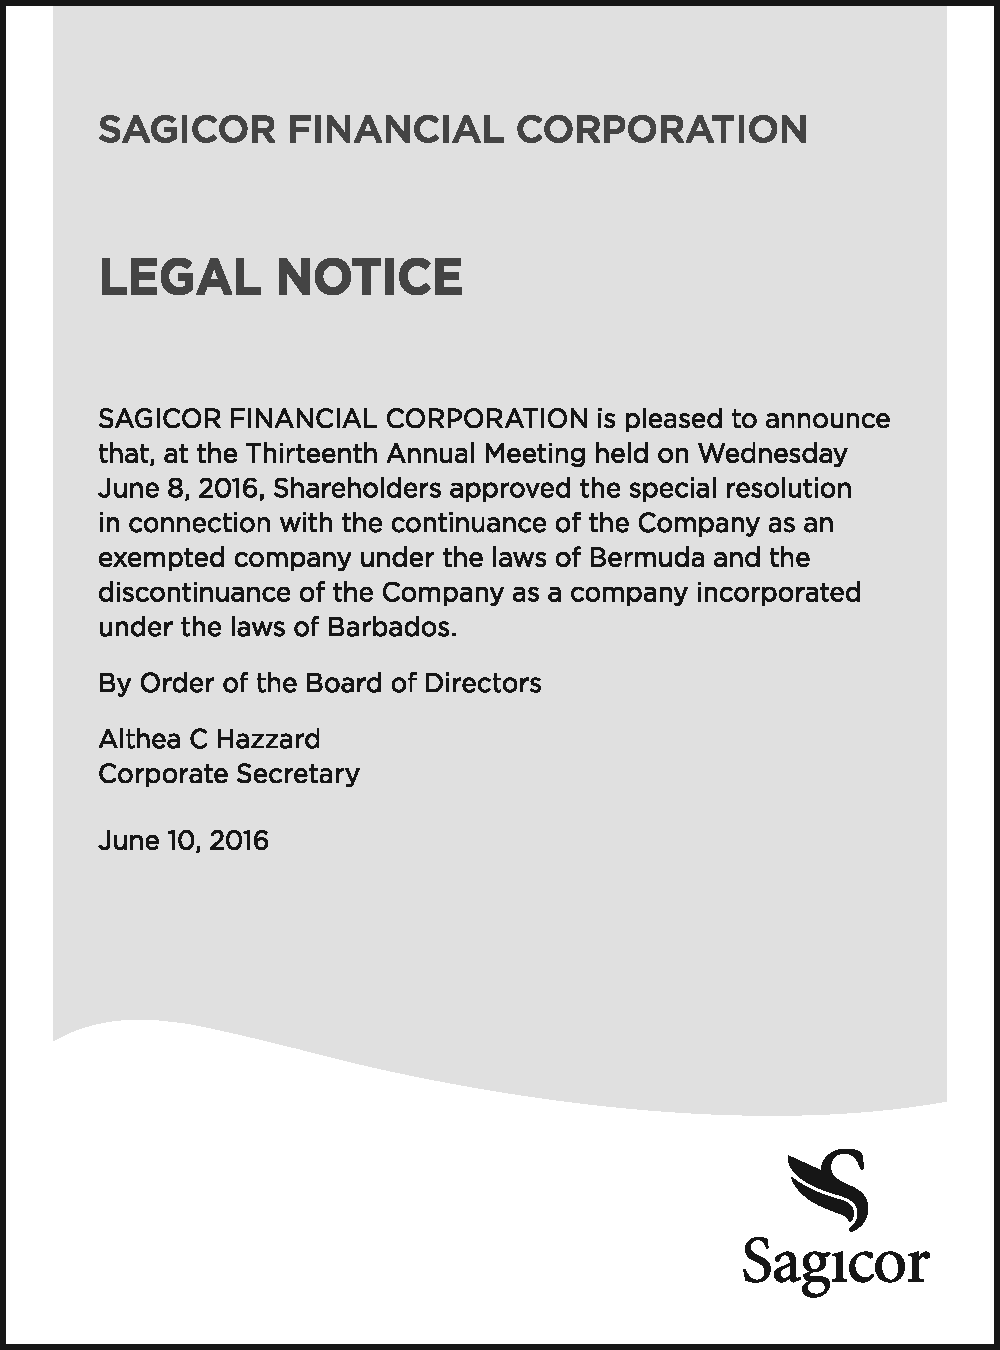 Sagicor-140616-Legal Notice-The Reporter-6.75x5in-MONTSERRAT-Final